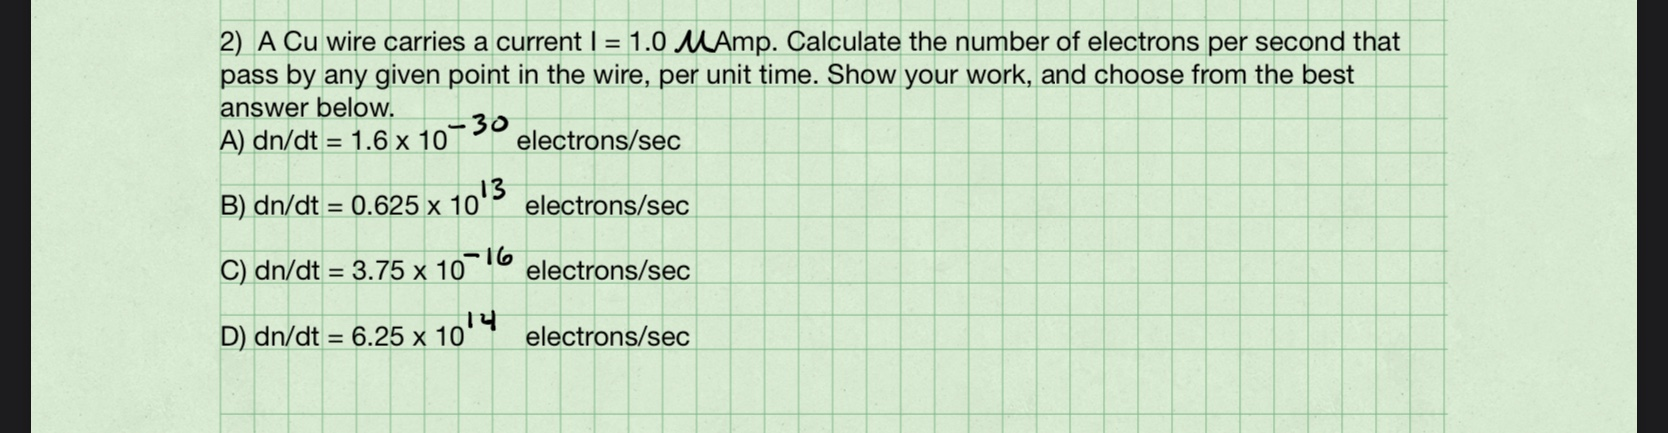 2) A Cu wire carries a current I = 1.0 MAmp. Calculate the number of electrons per second that pass by any given point in the wire, per unit time. Show your work, and choose from the best answer below. A) dn/dt = 1.6 x 10 30 electrons/sec B) dn/dt = 0.625 x 10' 10'3 electrons/sec C) dn/dt = 3.75 x 106 electrons/sec D) dn/dt = 6.25 x 10 electrons/sec %3D